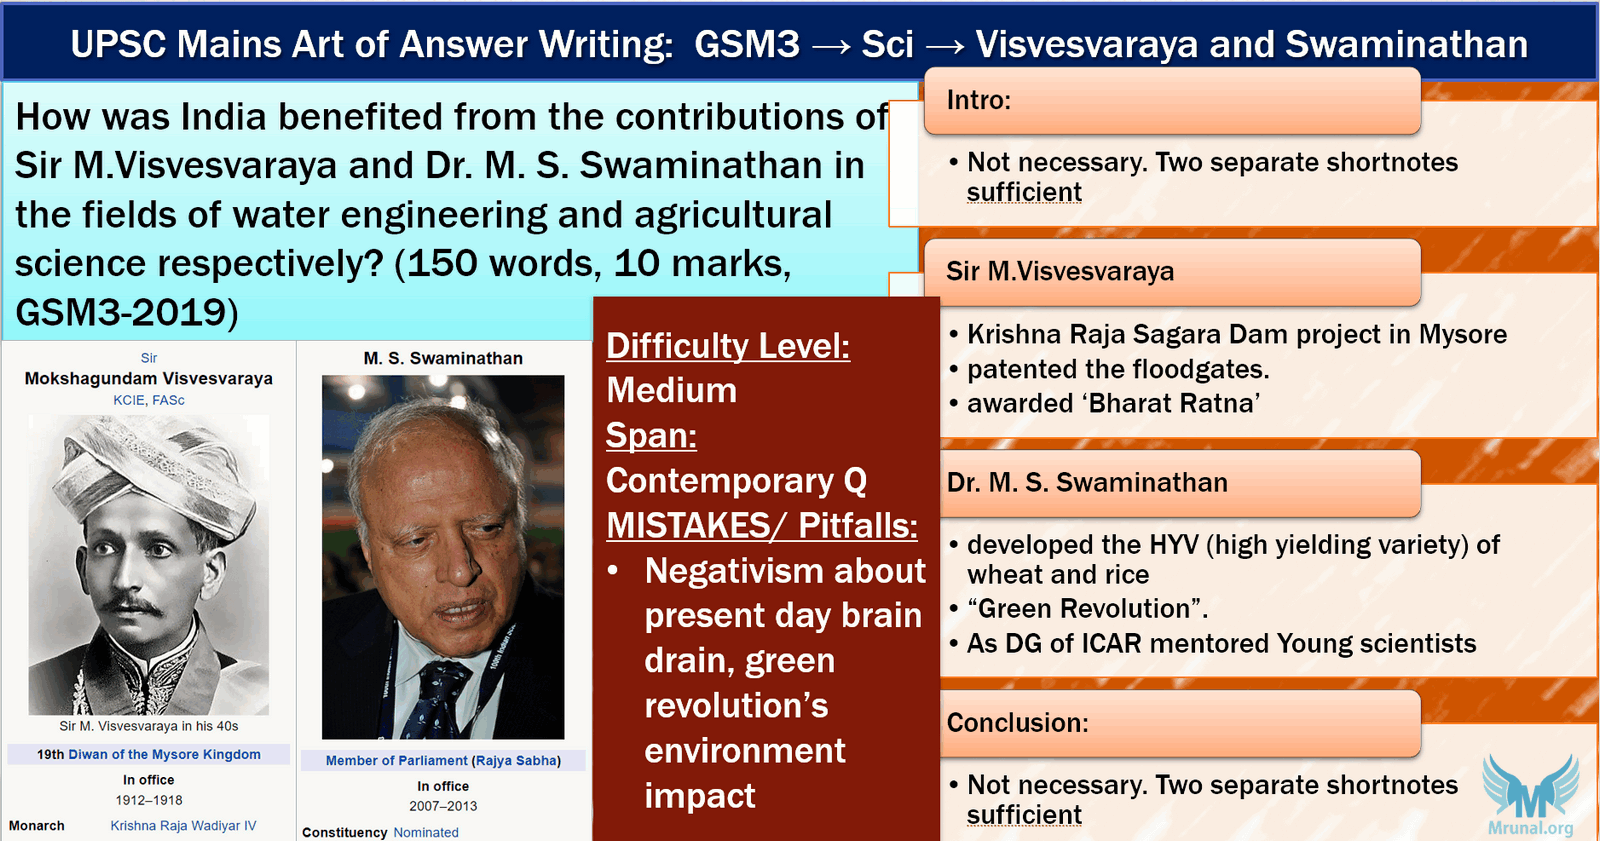 Contributions of Sir M. Visvesvaraya and Dr. M. S. Swaminathan